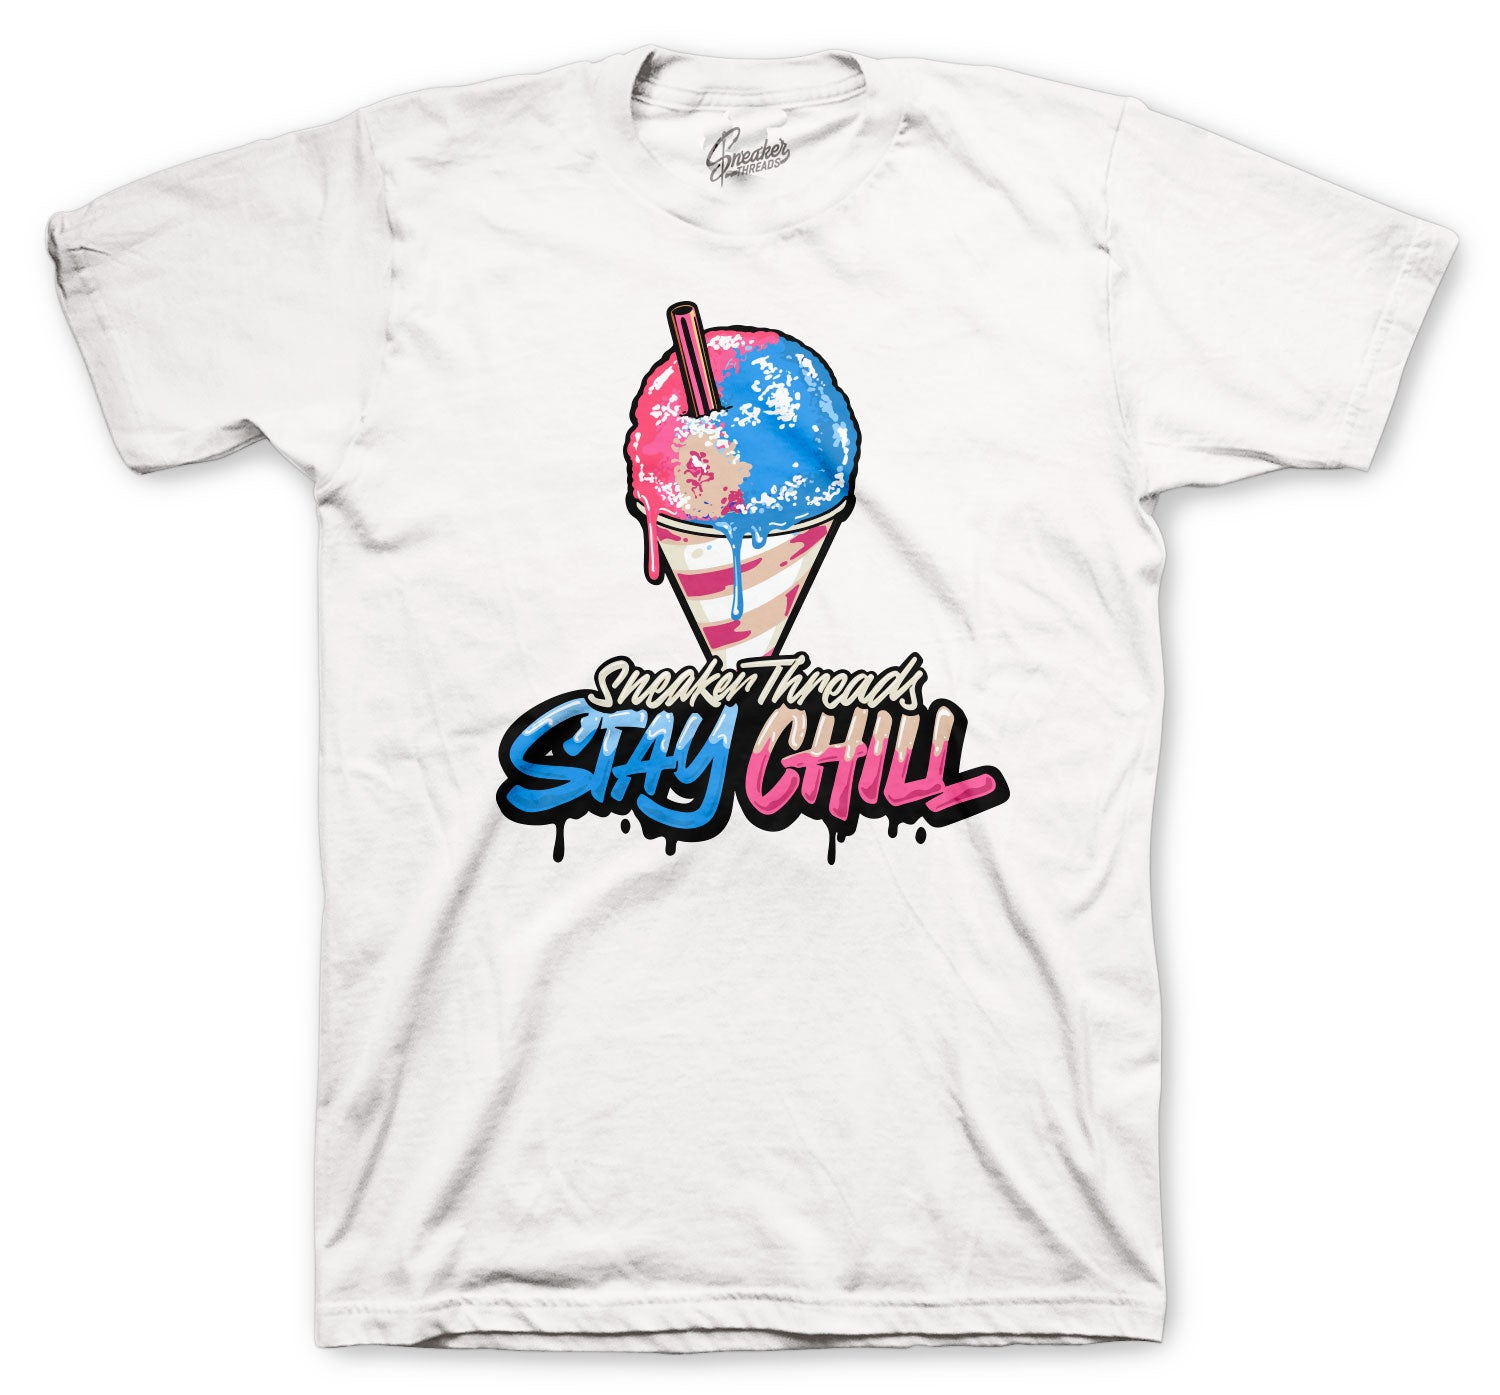 Jordan 4 Union Shirts - Stay Chill - White